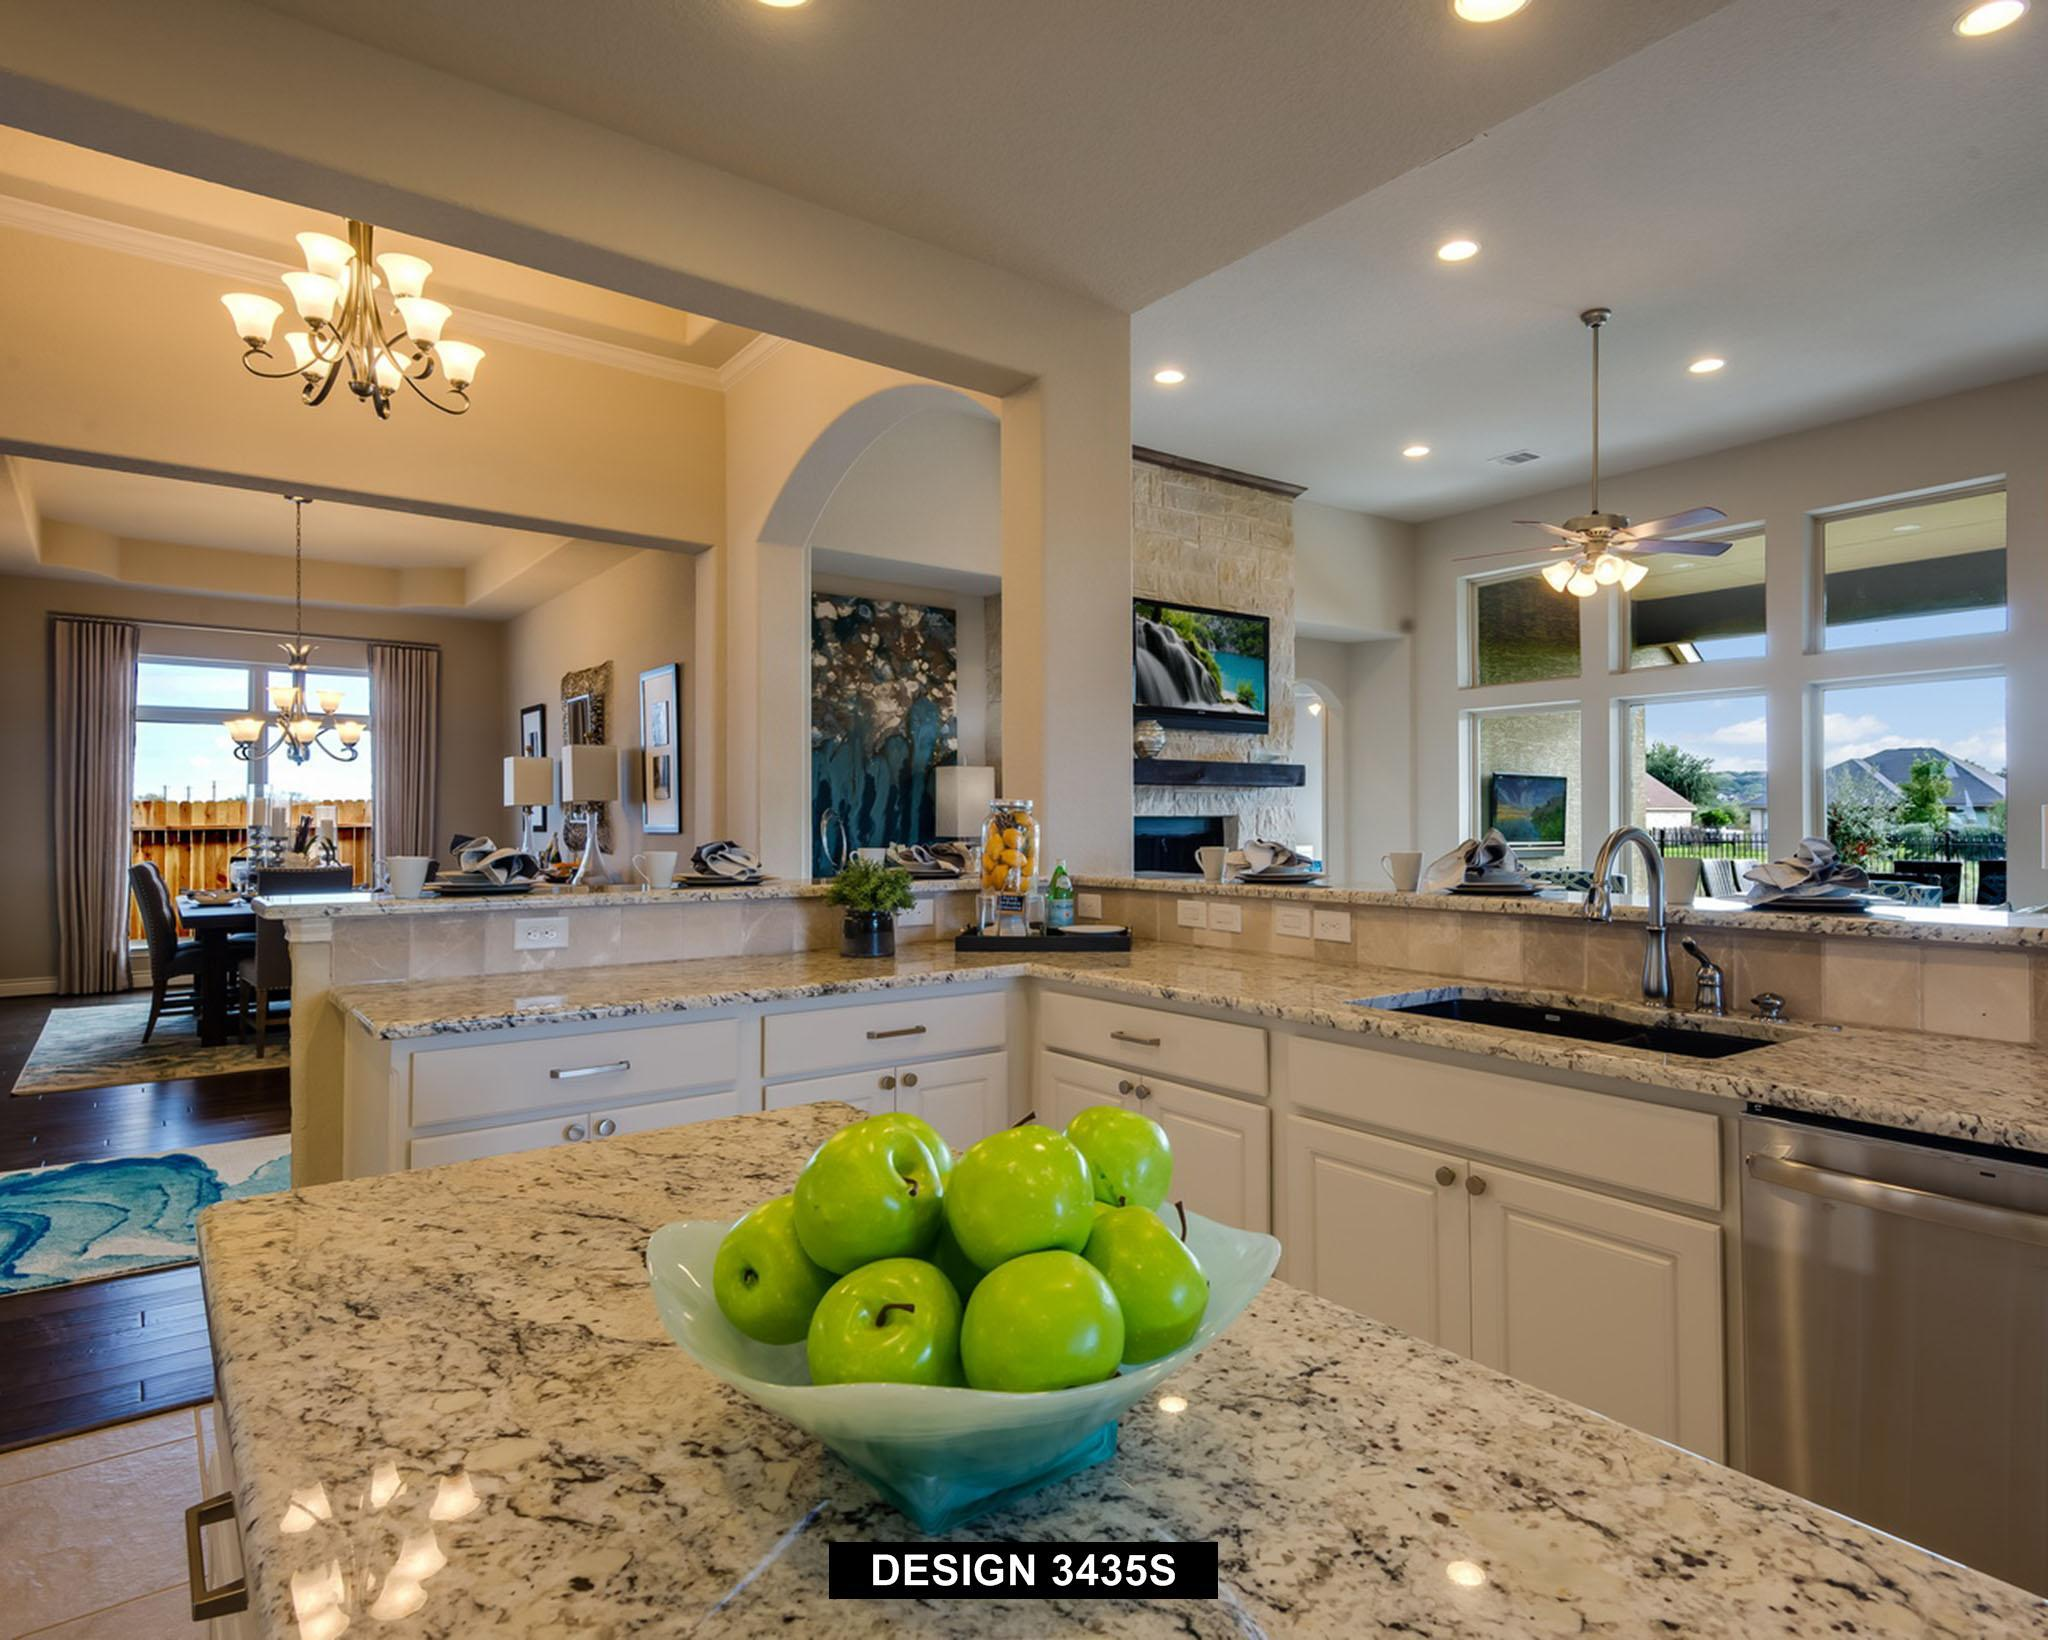 Kitchen featured in the 3435S By Perry Homes in Austin, TX